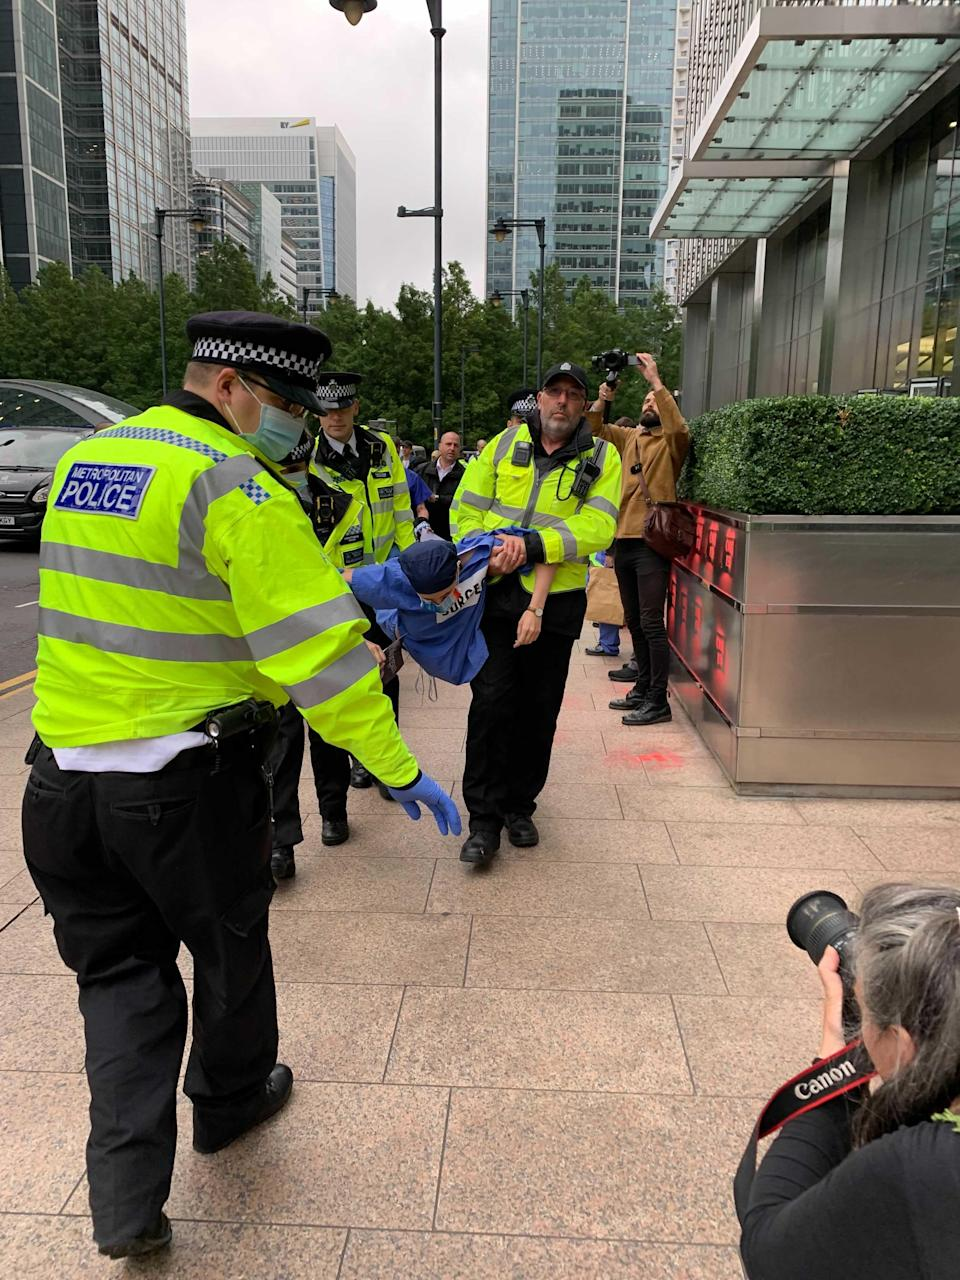 Police carry a protester away (The Independent)